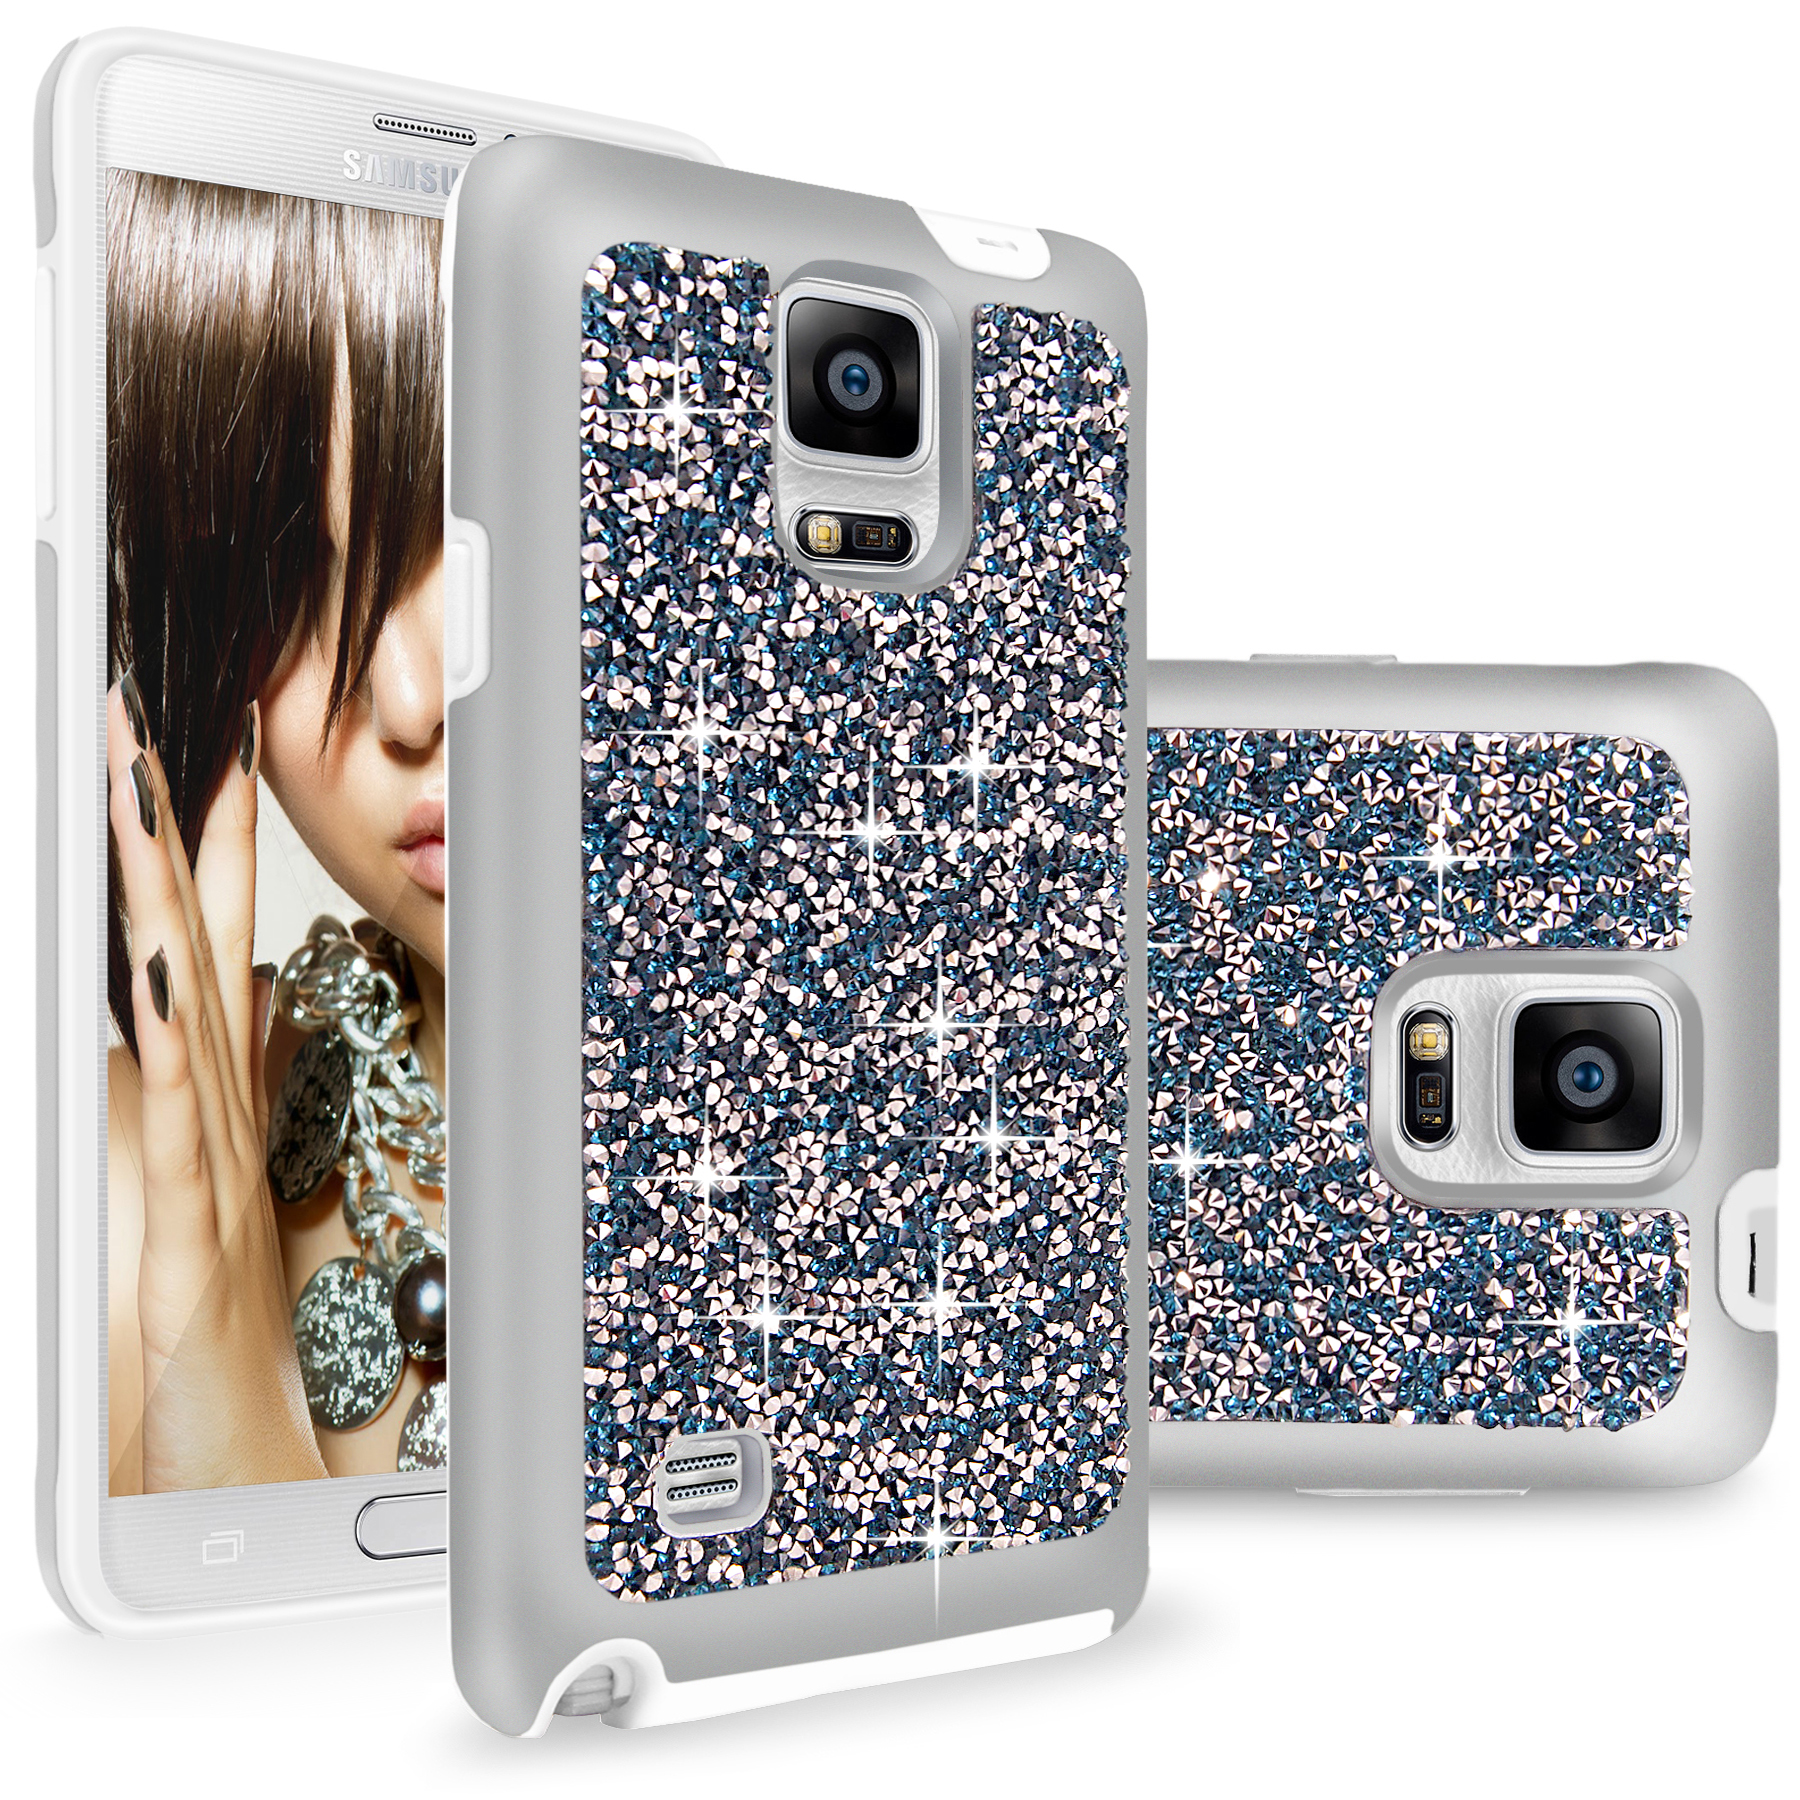 Galaxy Note 4 case, Cellularvilla [Hybrid] Luxury Bling Jewel Rock Crystal Rhinestone Diamond Case [Shockproof] Dual Layer Protective Cover for Samsung Galaxy Note 4 SM-N910S N910C